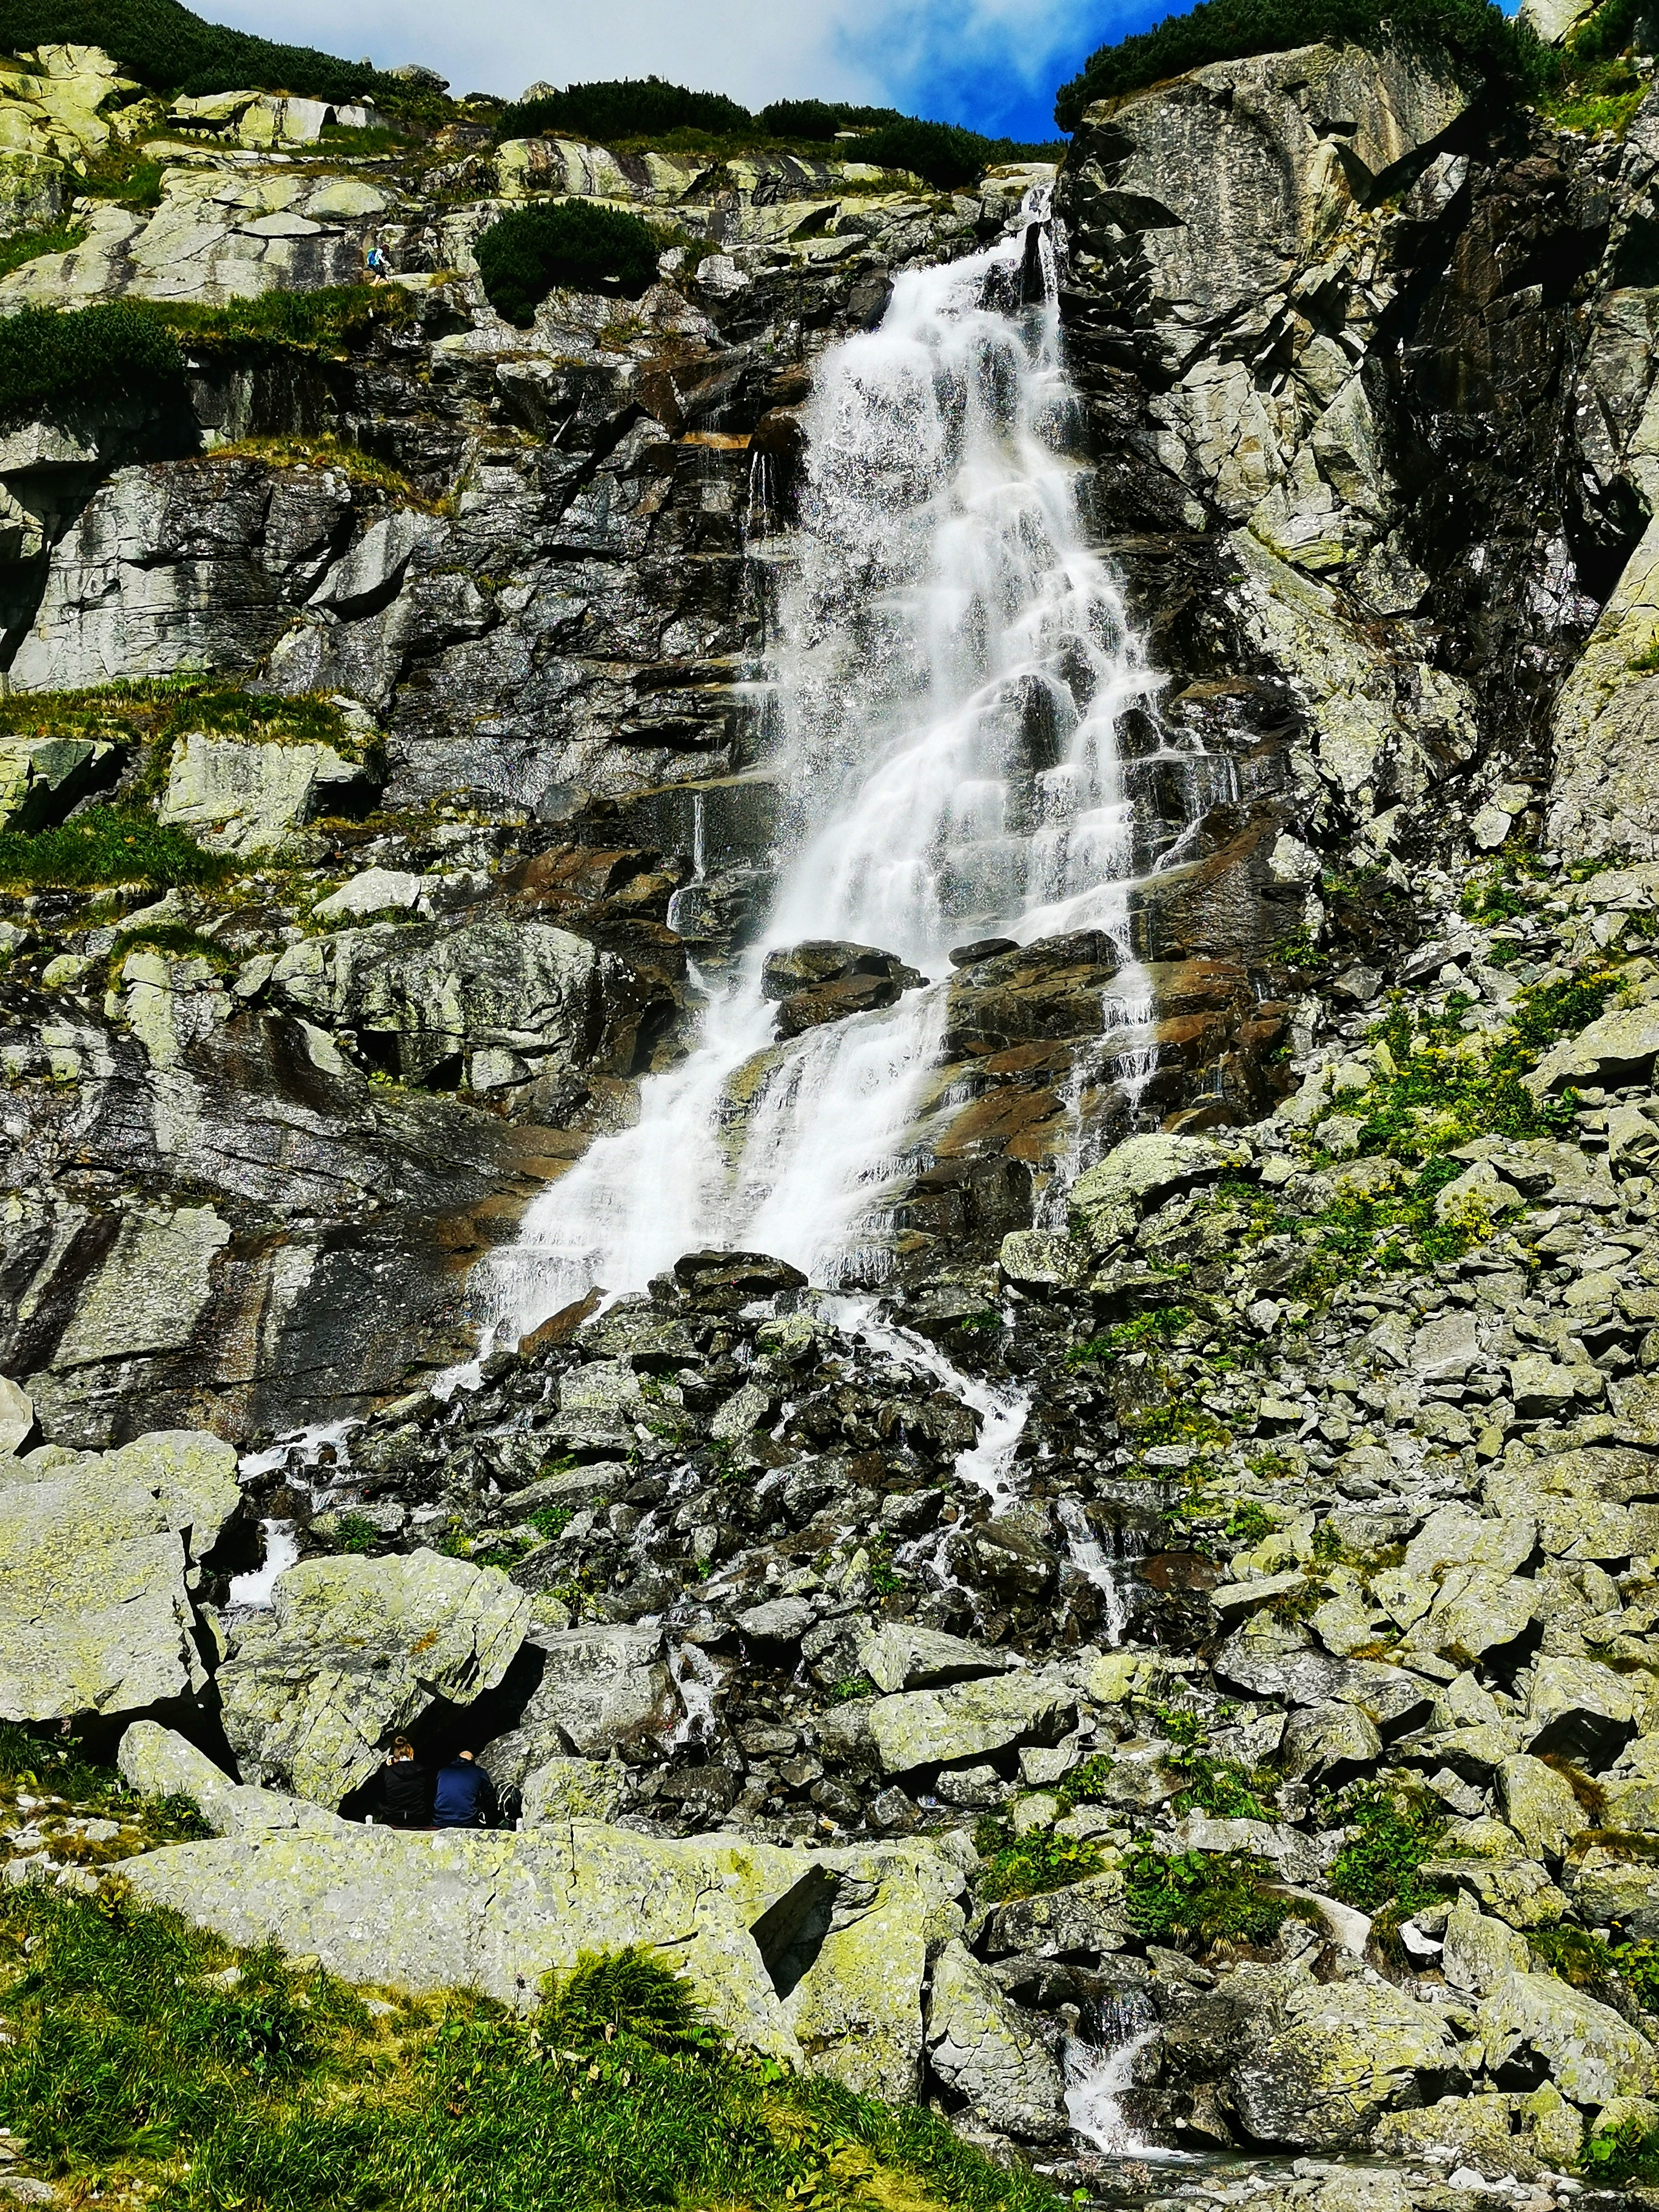 Walking through the peaceful valley of Mlynická dolina, you have an opportunity to admire the majestic Skok Waterfall.